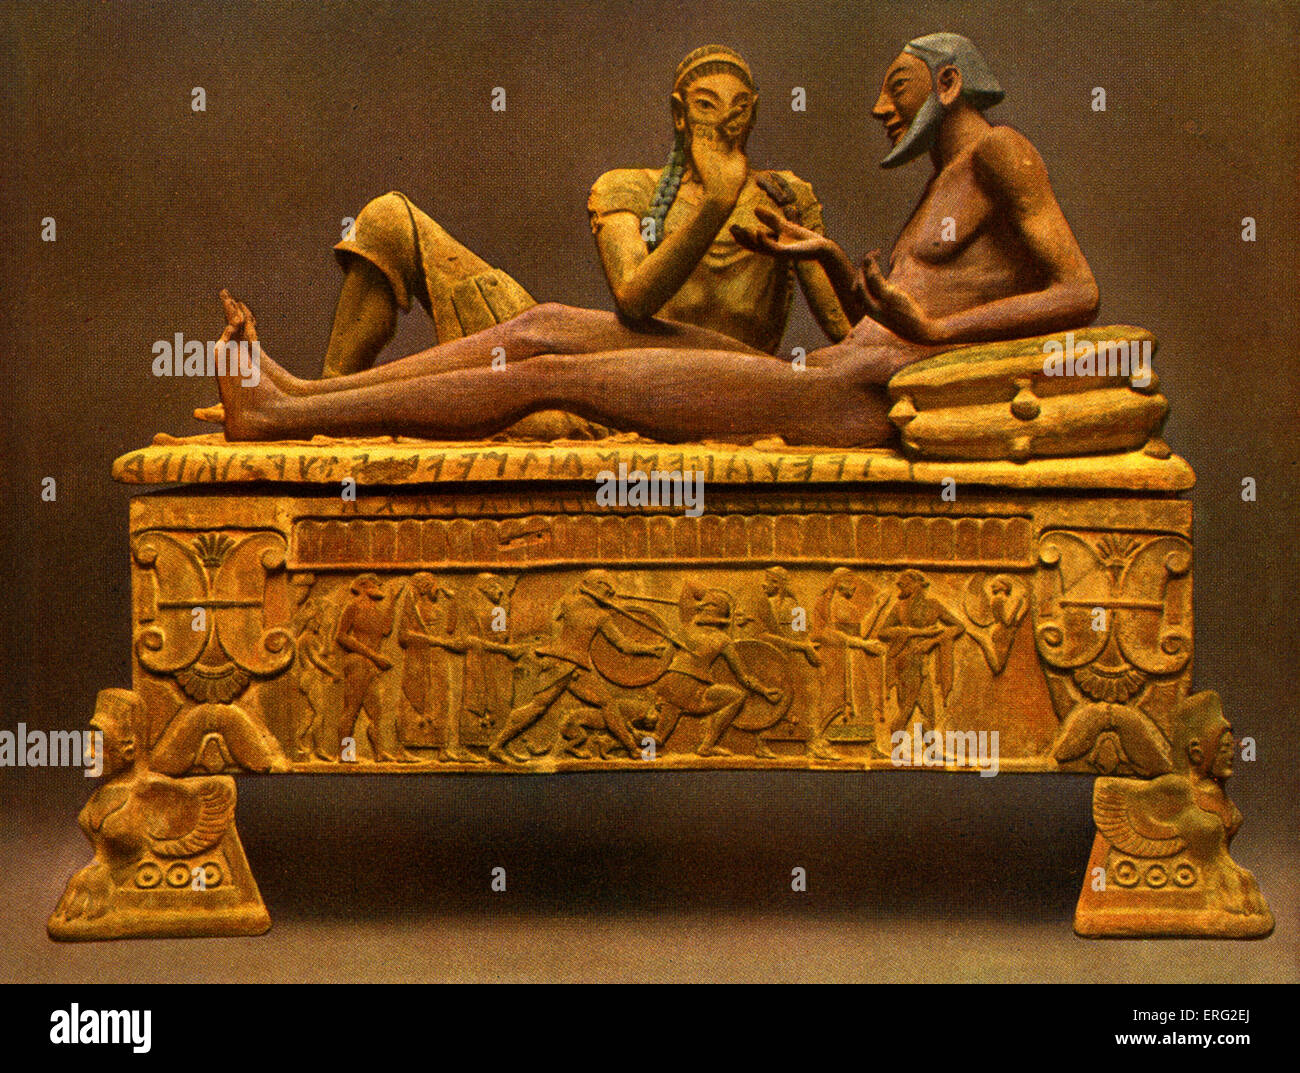 Painted Etruscan sarcophagus showing a reclining man in conversation with winged beast feet and a  sc 1 st  Alamy & Etruscan Sarcophagus Stock Photos u0026 Etruscan Sarcophagus Stock ... islam-shia.org